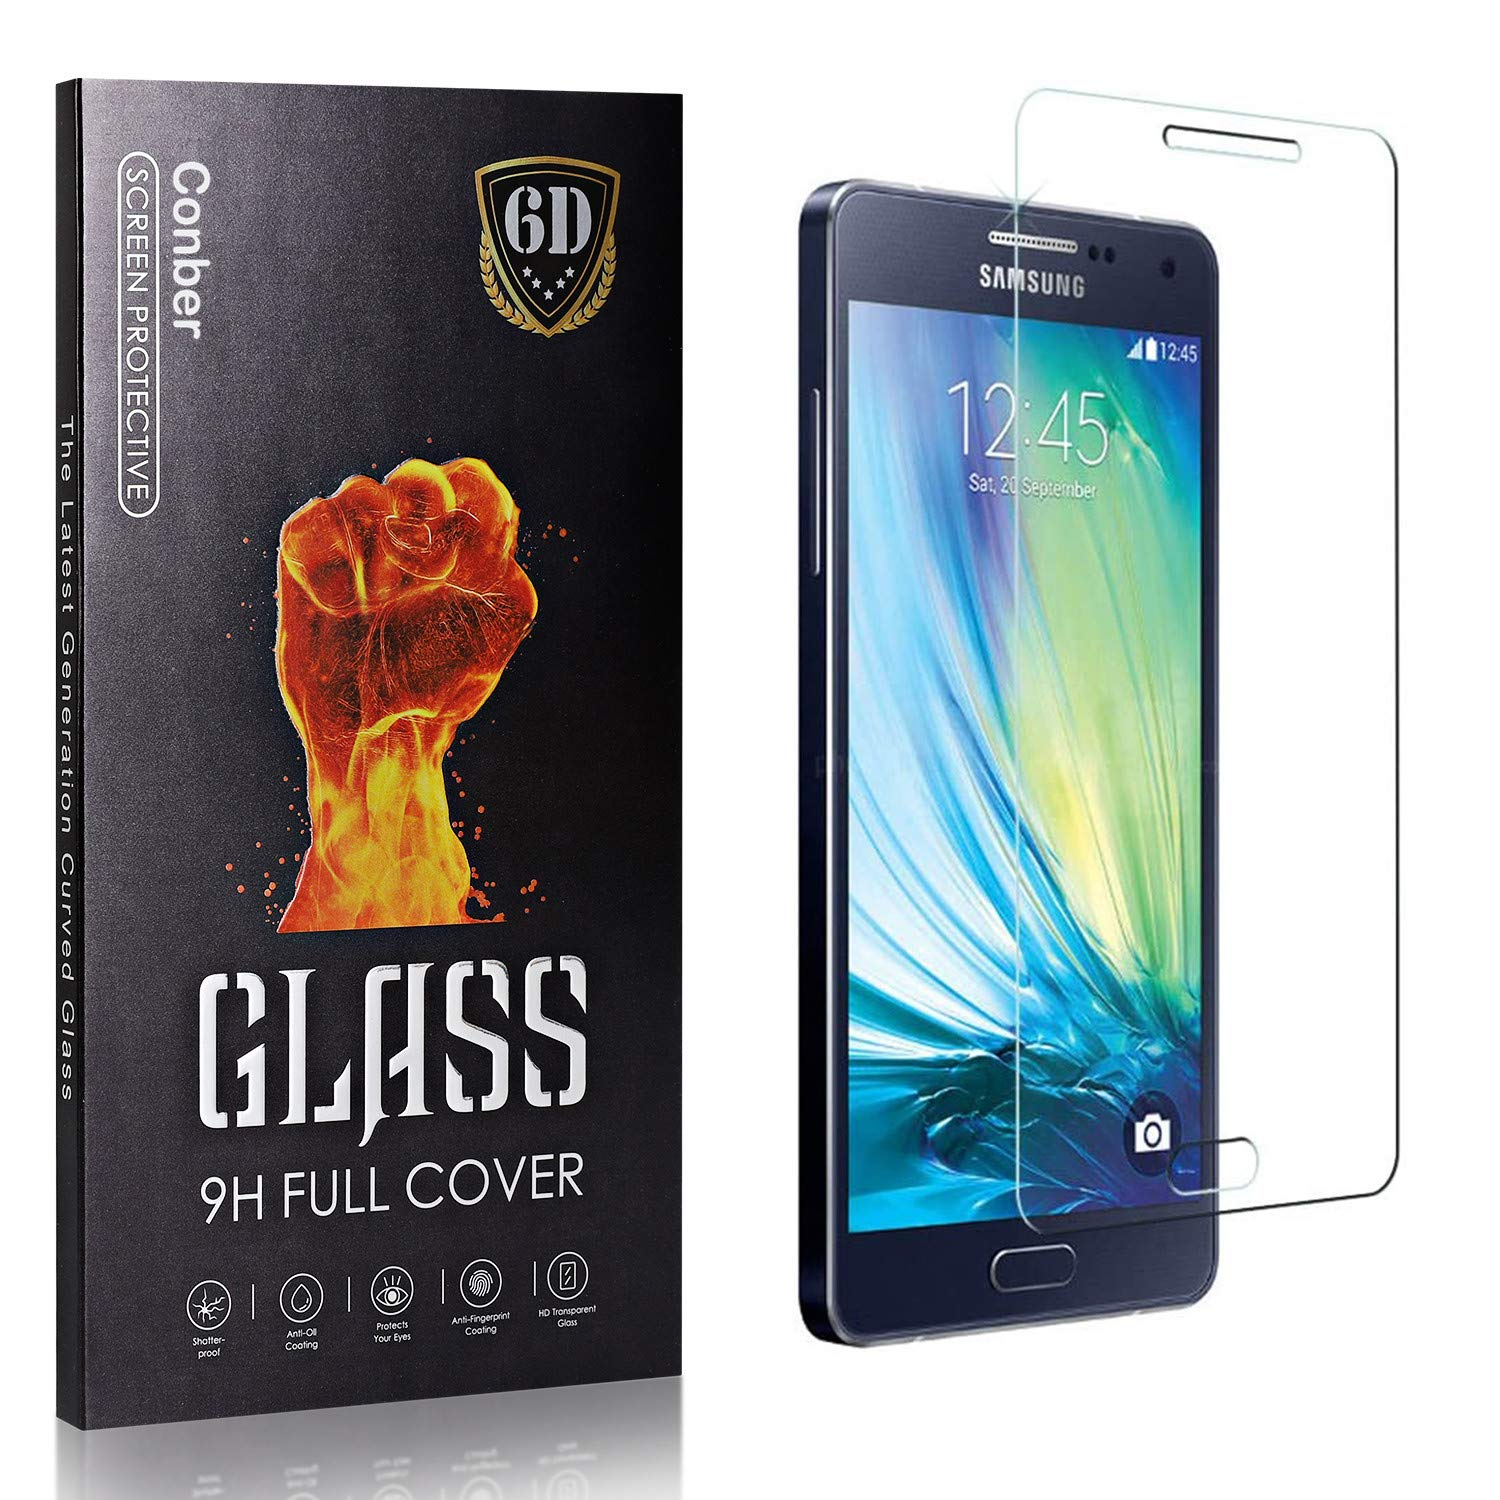 Conber 4 Pack Las Vegas Mall Screen Protector for Raleigh Mall Galaxy Tem 2015 Samsung A7